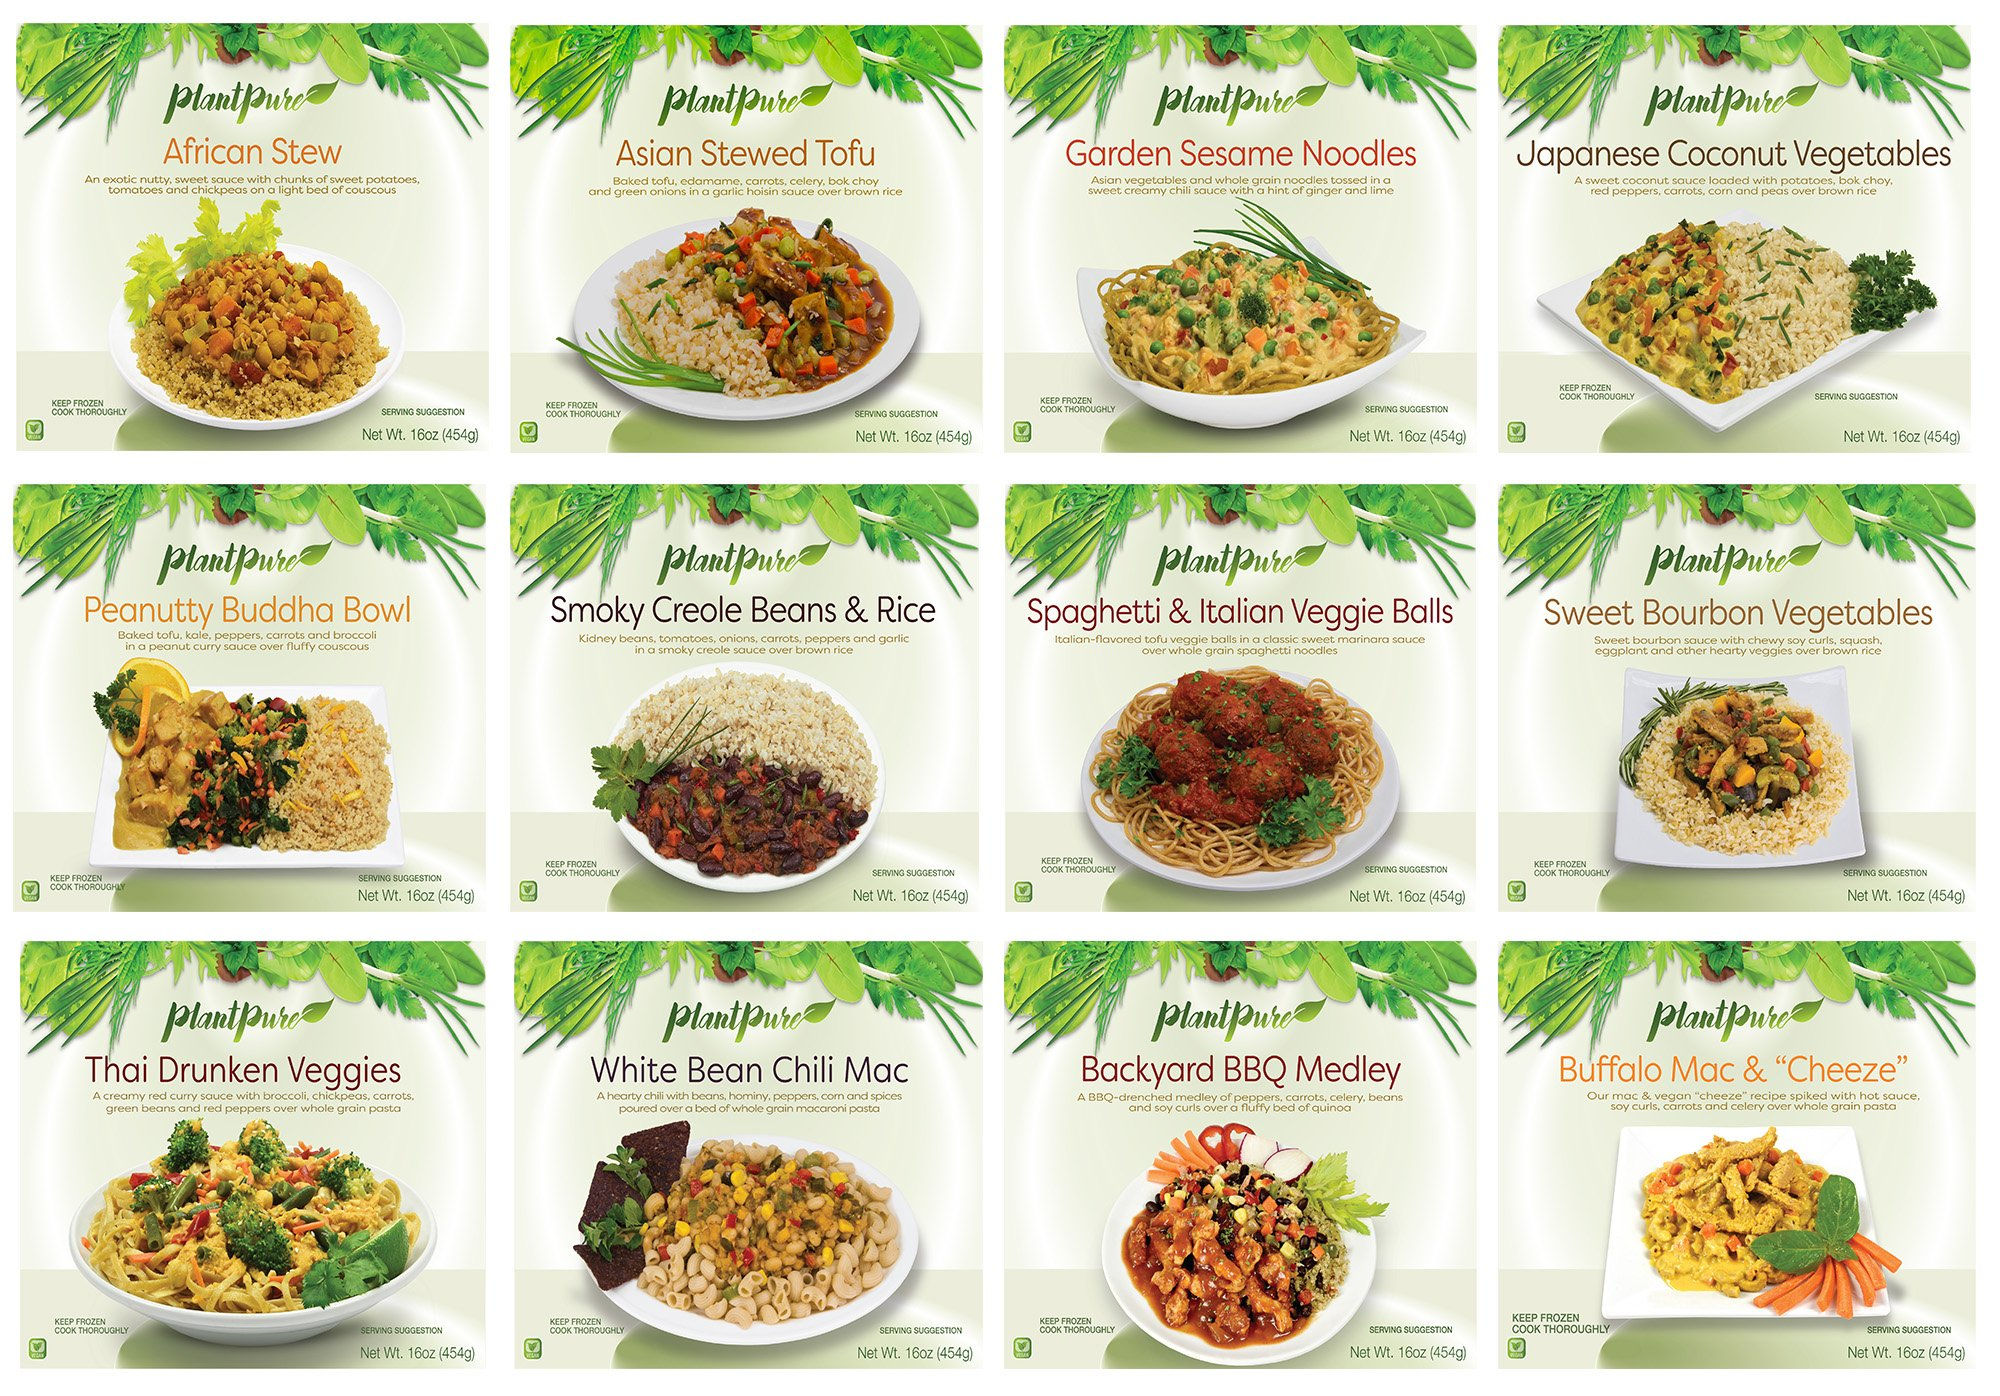 PlantPure Standard Pack of 20 Vegan Plant Based Frozen Entrees (One of each entree)